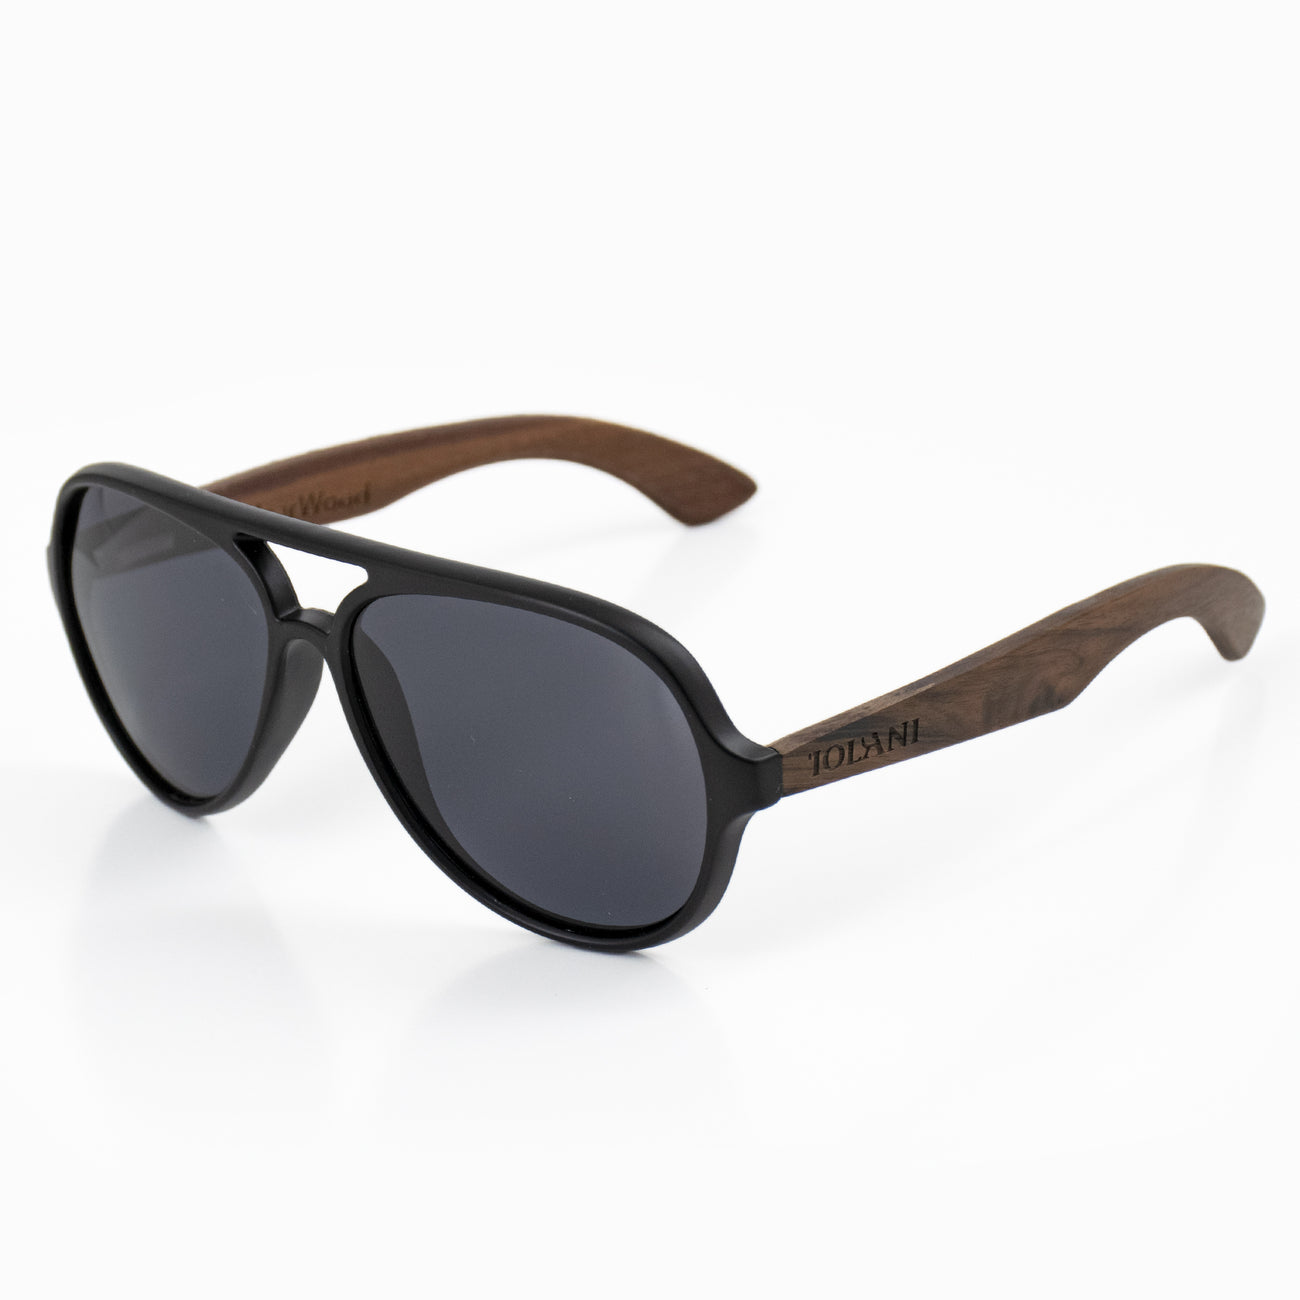 3ea0970f1 'IOLANI BLACK AVIATOR WALNUT SUNGLASSES